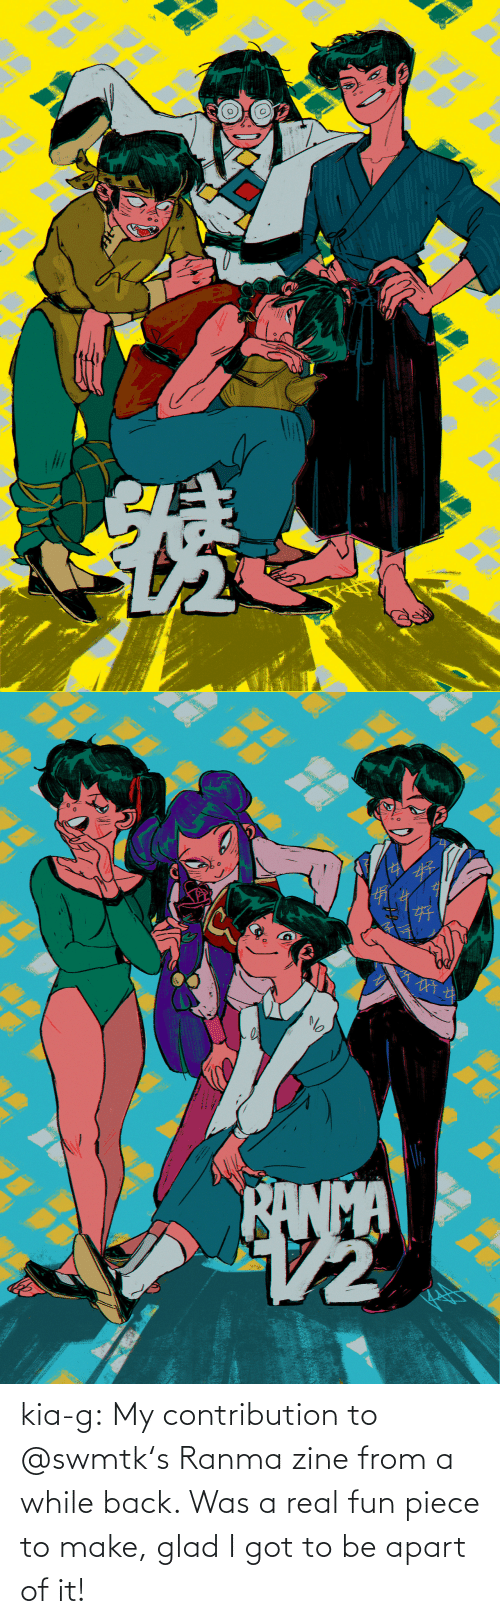 ranma: kia-g:  My contribution to @swmtk's Ranma zine from a while back. Was a real fun piece to make, glad I got to be apart of it!